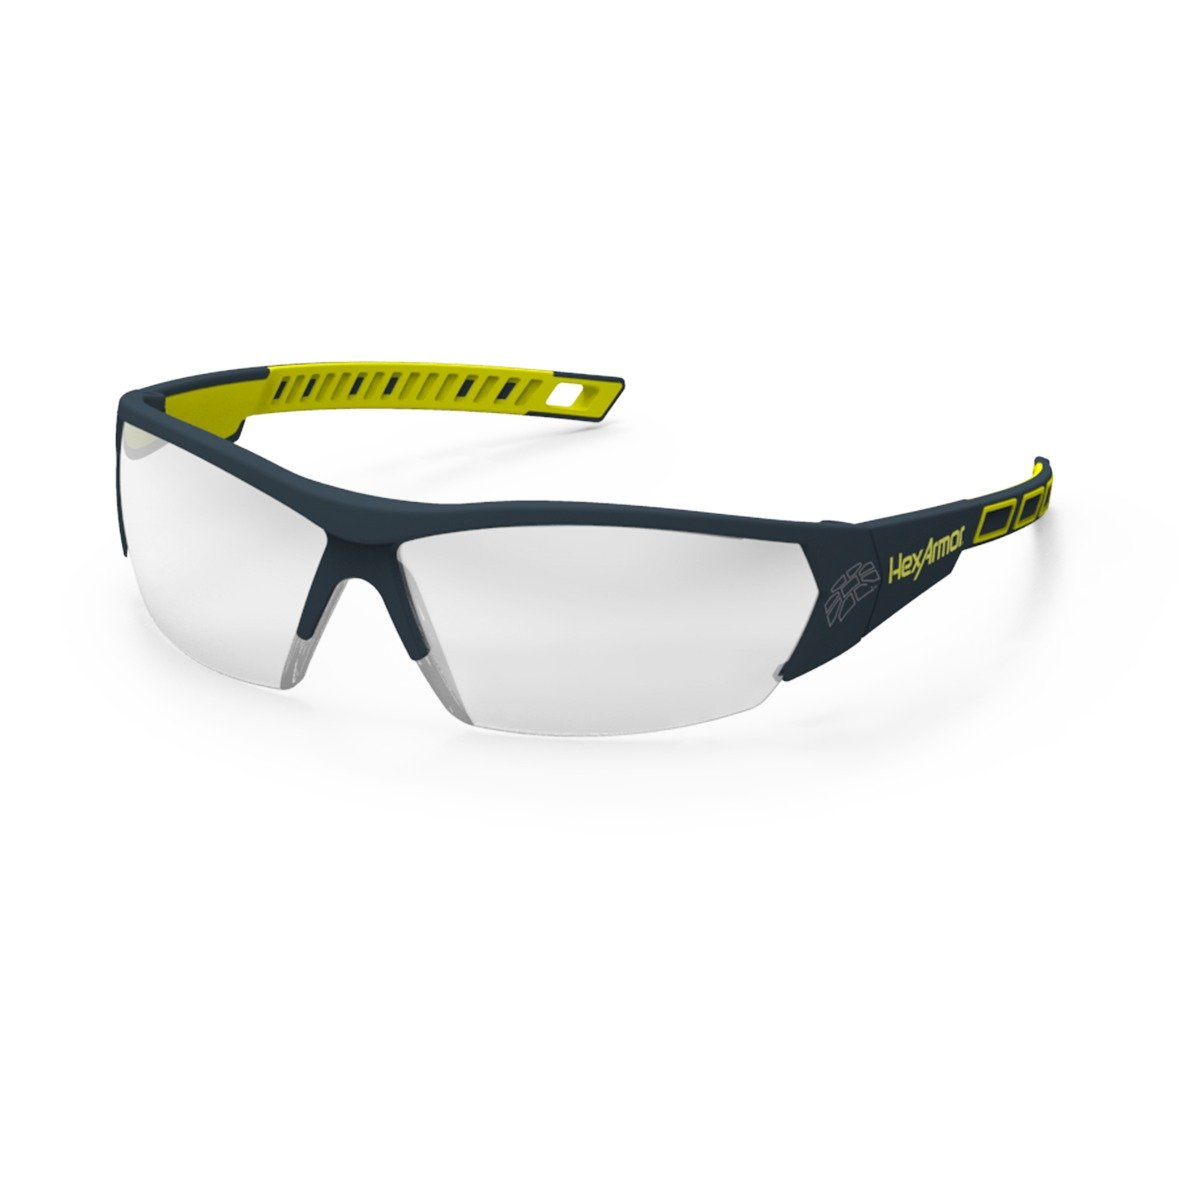 MX250 Lightweight Silver Mirror Anti Fog Safety Glasses